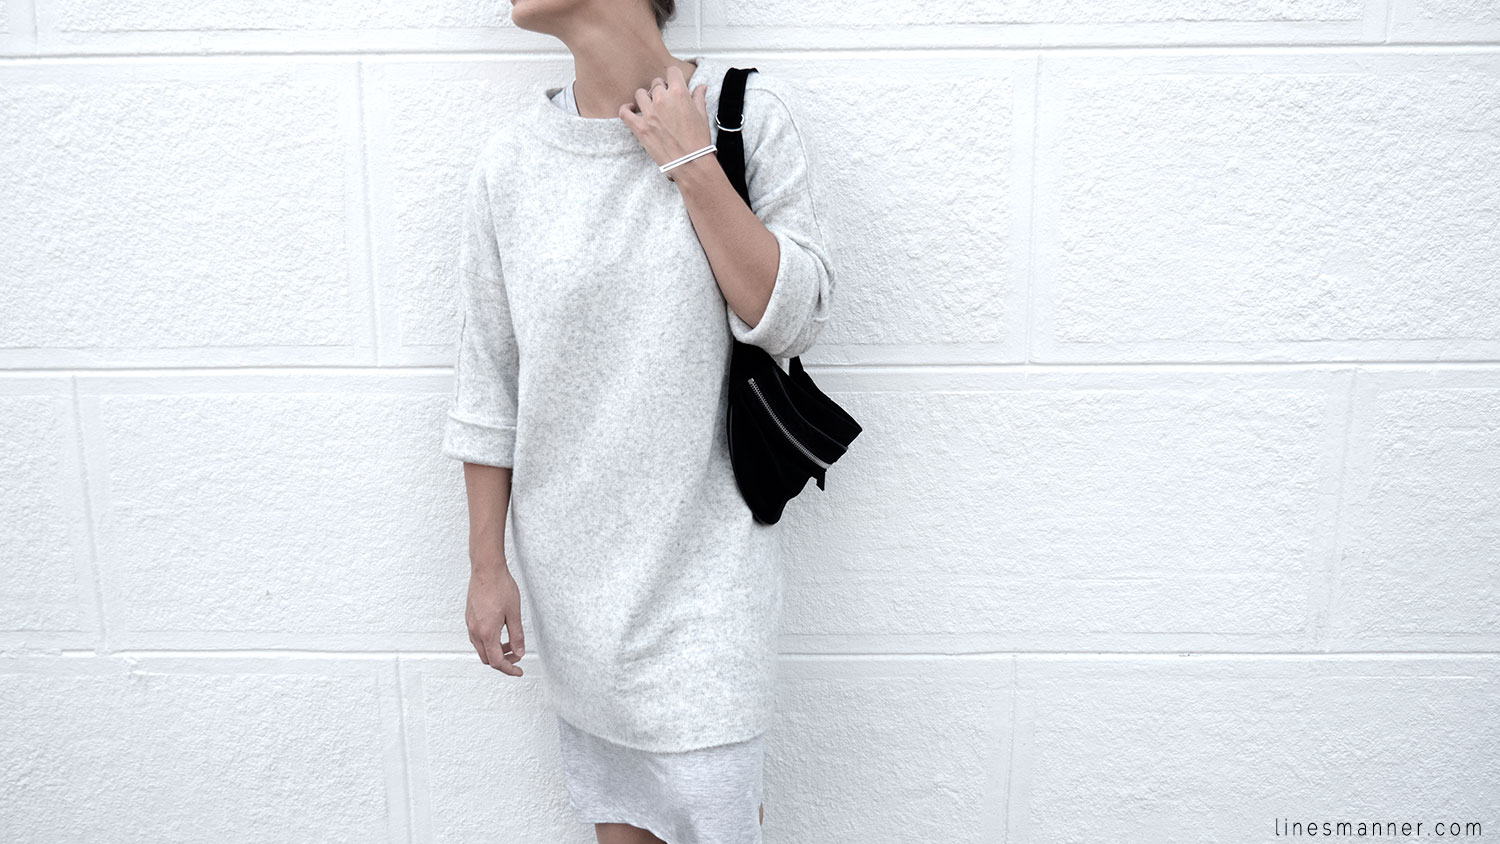 Lines-Manner-Fashion-Collaboration-The_Demeler-Monochrome-Grey_on_Grey-Fresh-Brightly-Outfit-Simplicity-Details-Trend-Minimalist-Flowy-Layering-Sleeves-Sweater_Dress-15